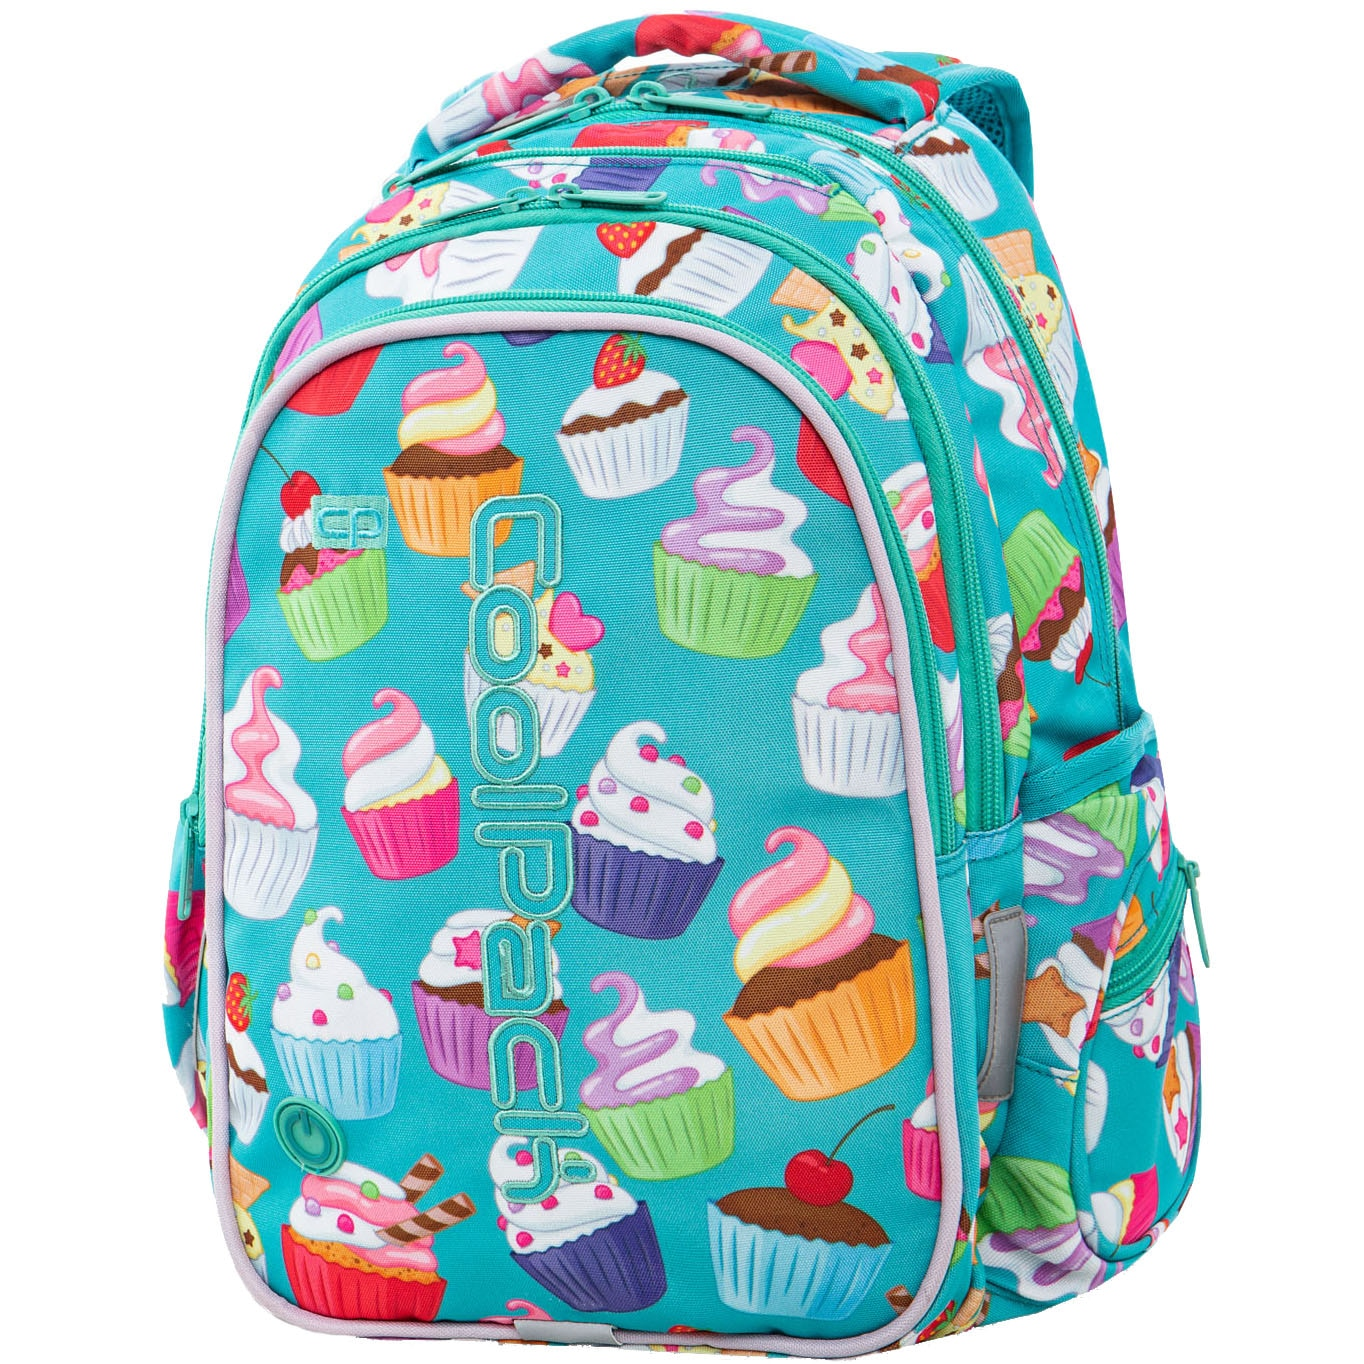 Ghiozdan Led Coolpack Joy Youth Cupcakes Emag Ro